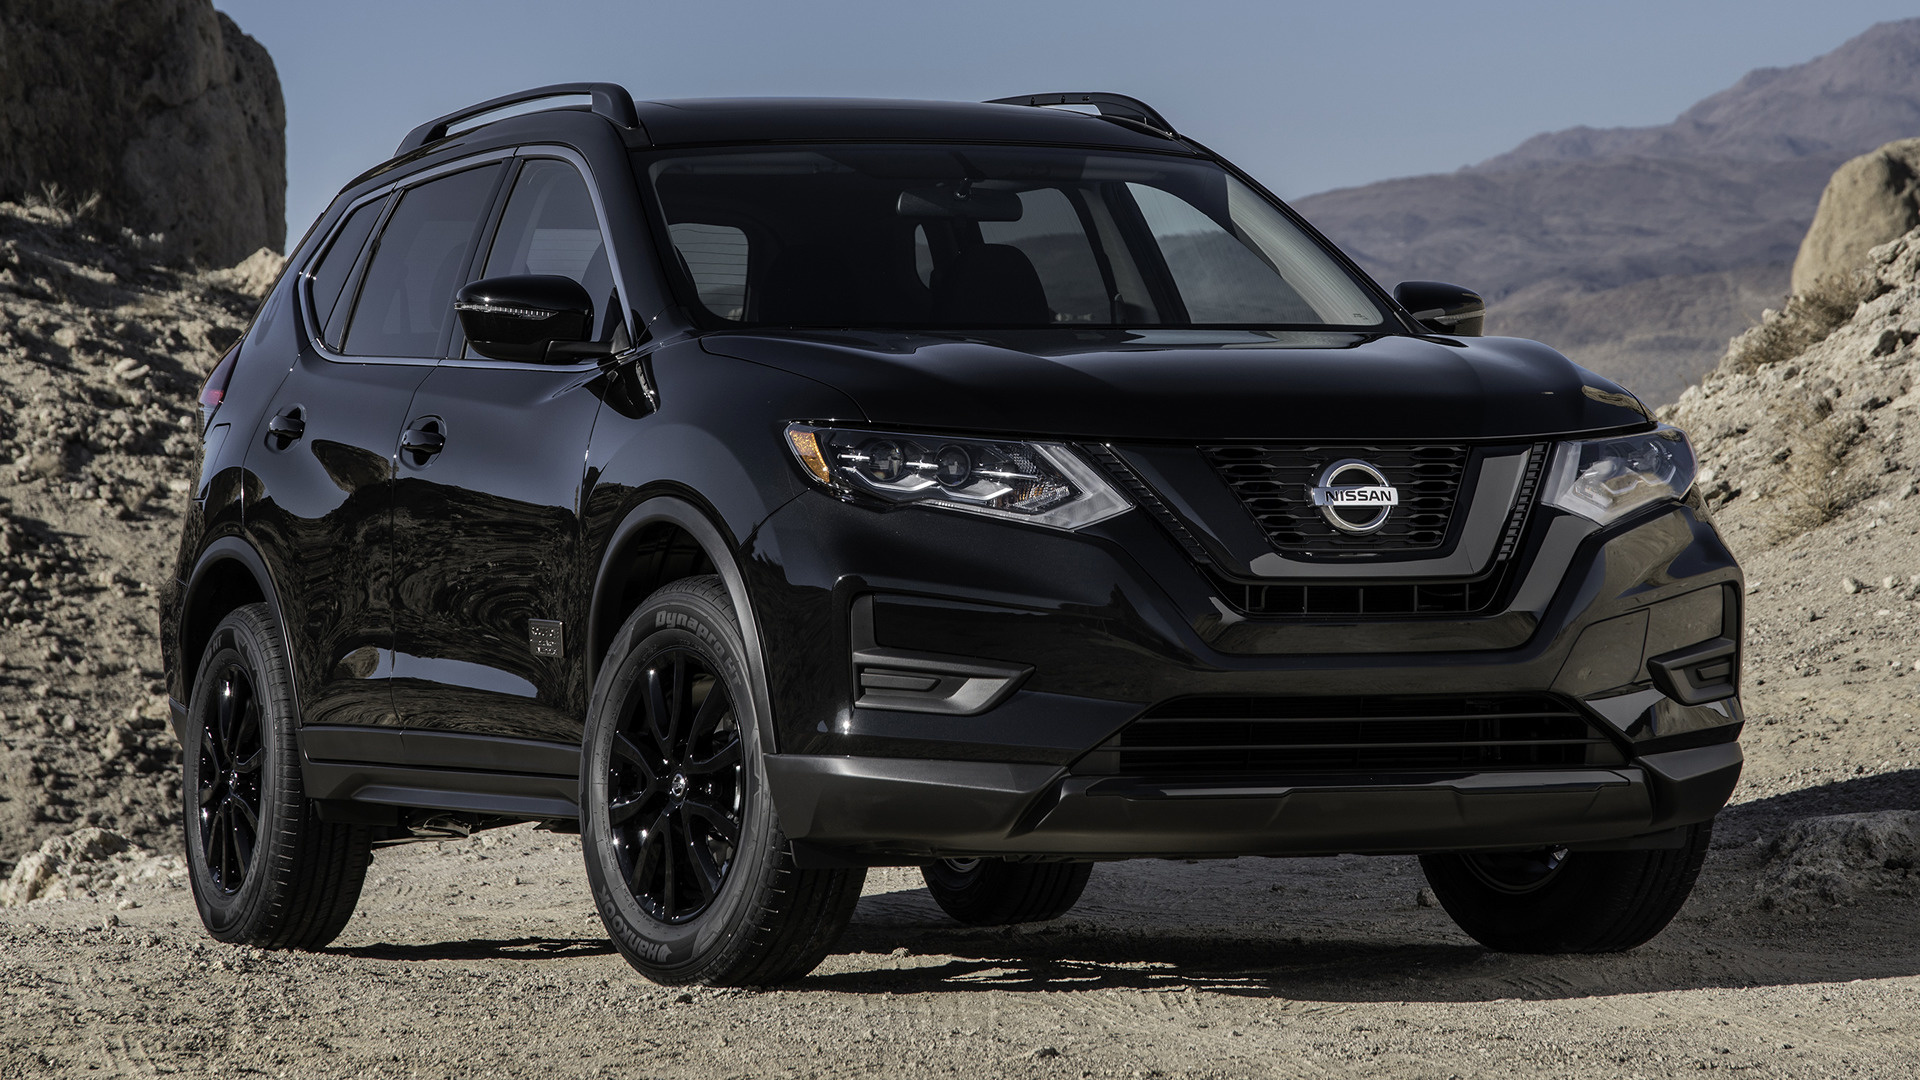 Nissan Rogue One Star Wars Edition (2017) Wallpapers and ...